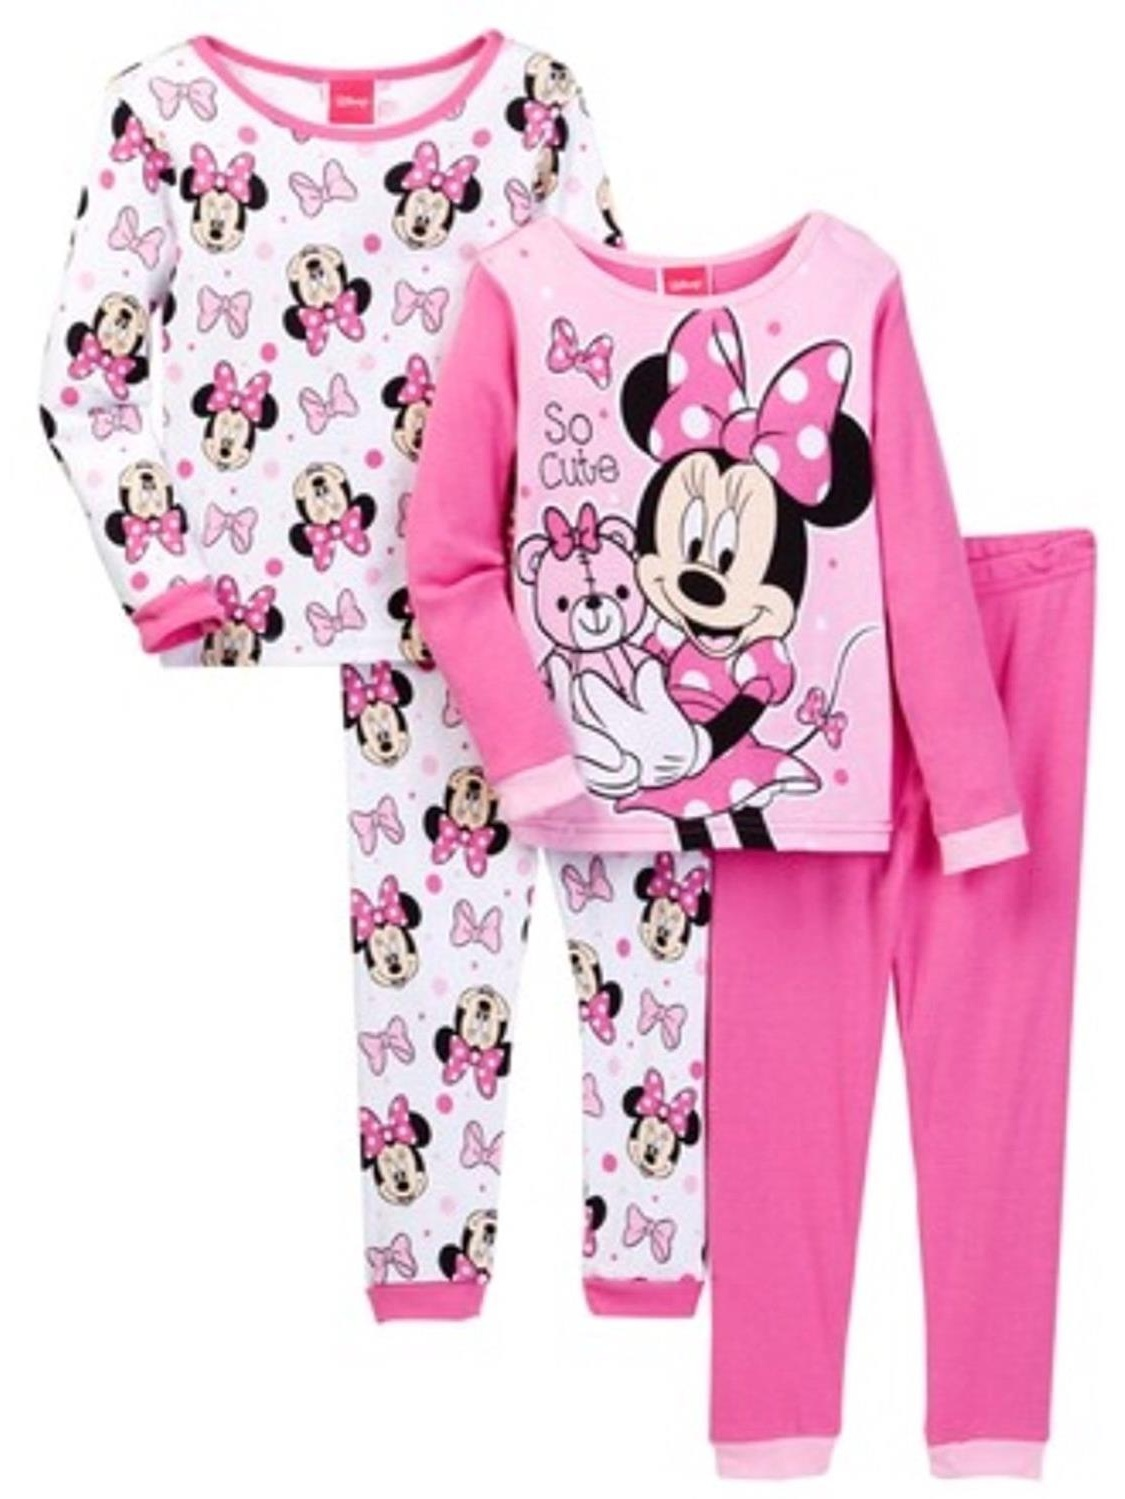 Girls Pajamas Set Cotton Pjs Short Kids Sleepwear Toddler Clothes 2 Piece